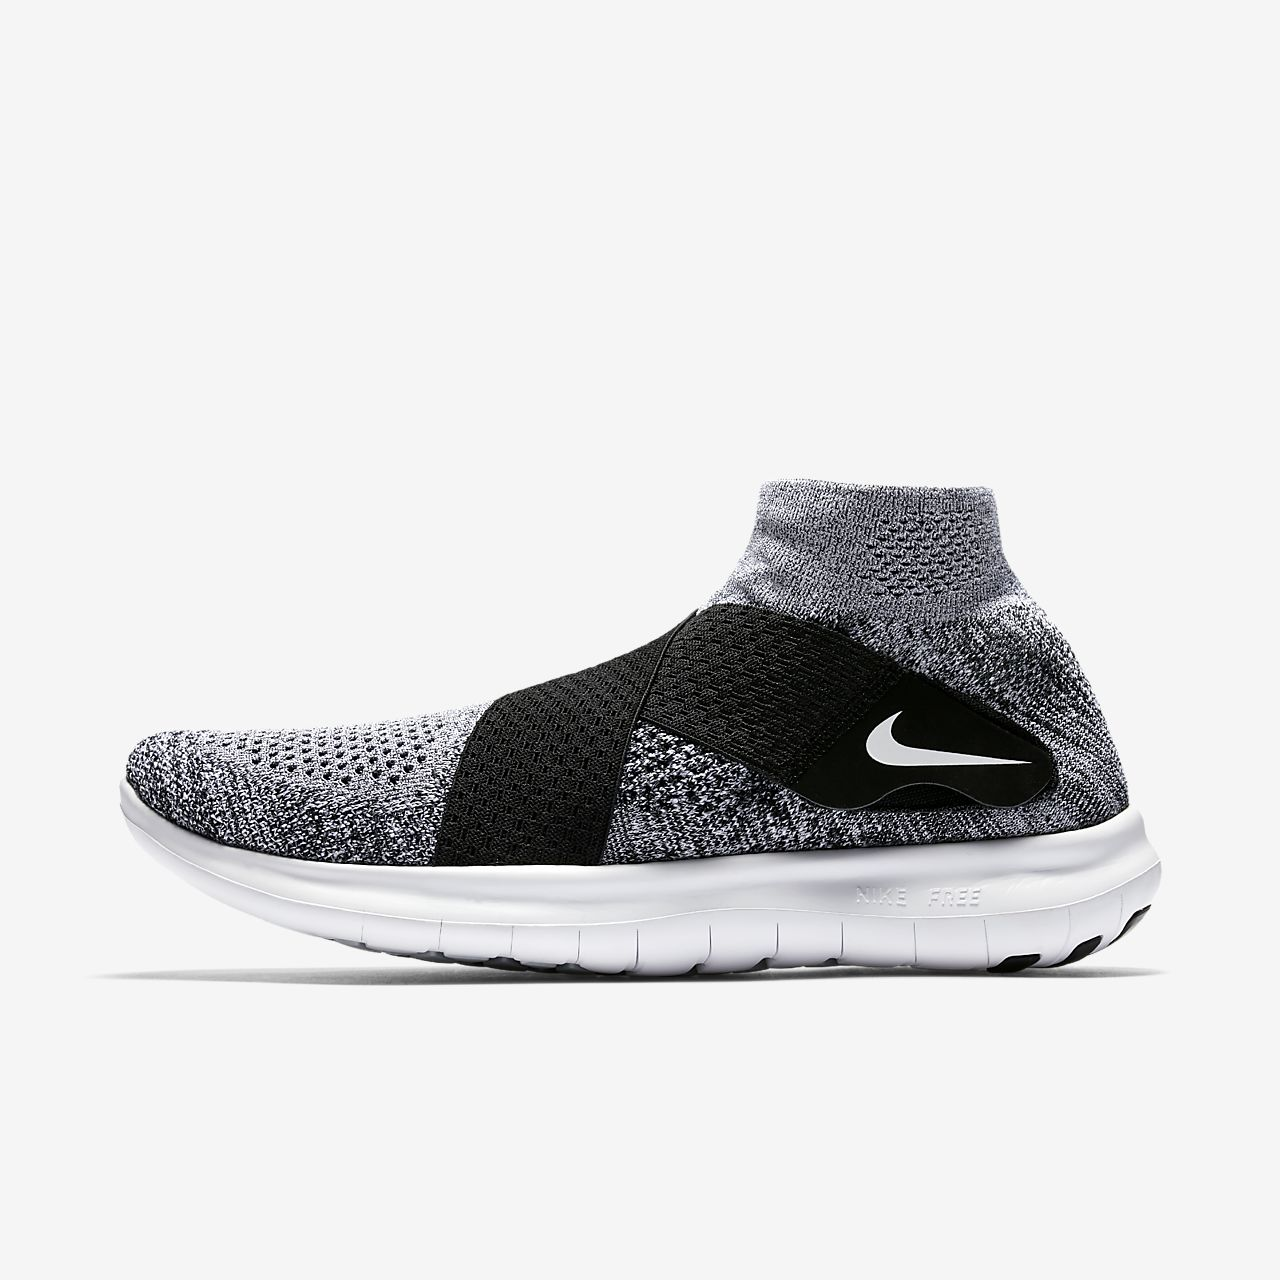 Nike Free RN Motion Flyknit 2017 Mens 880845-001 Black Wolf Grey Shoes Size 15